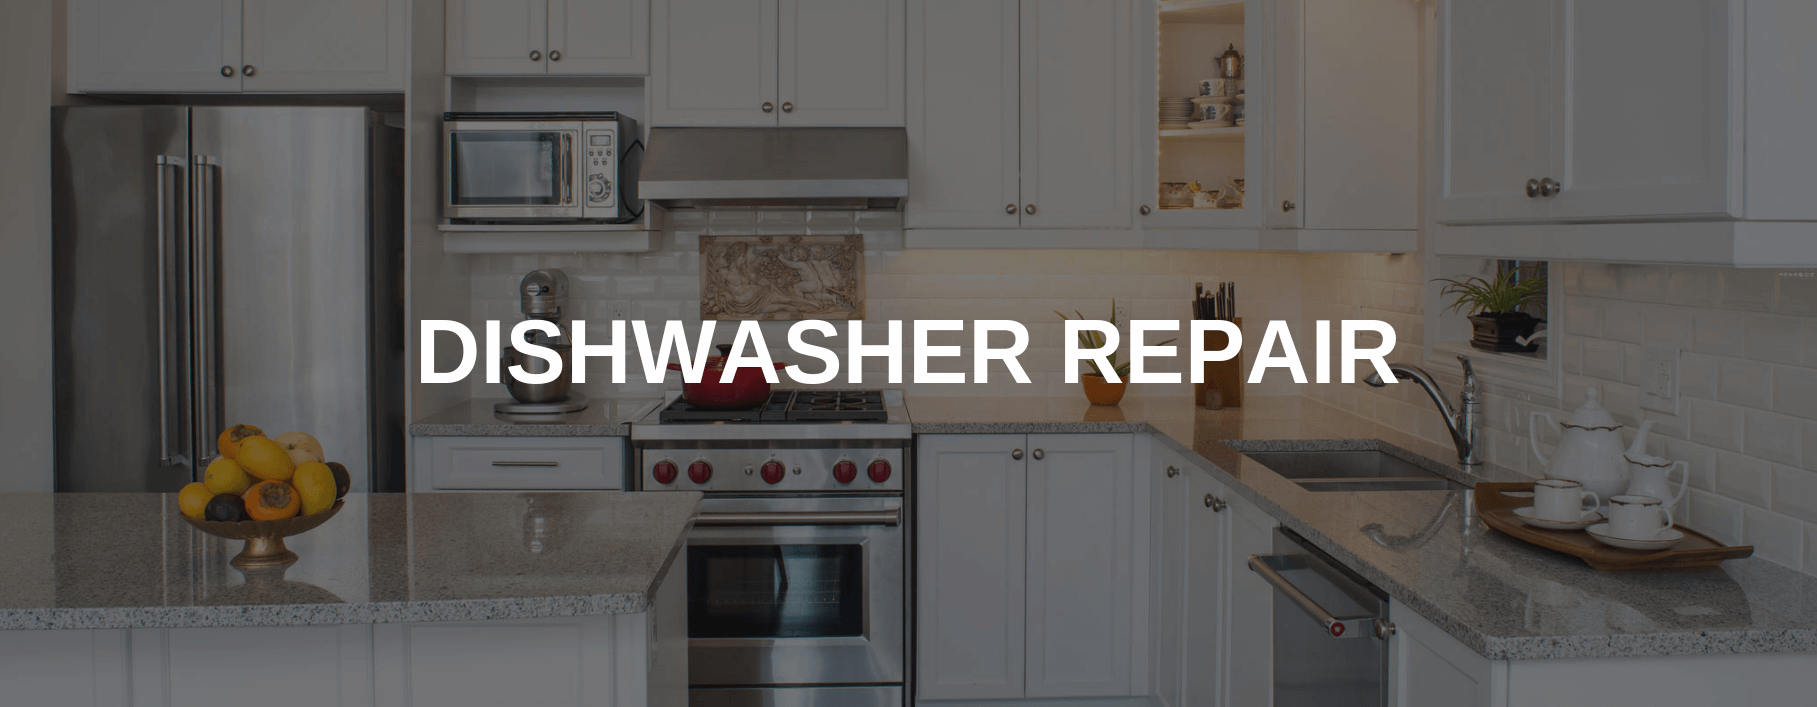 dishwasher repair edison